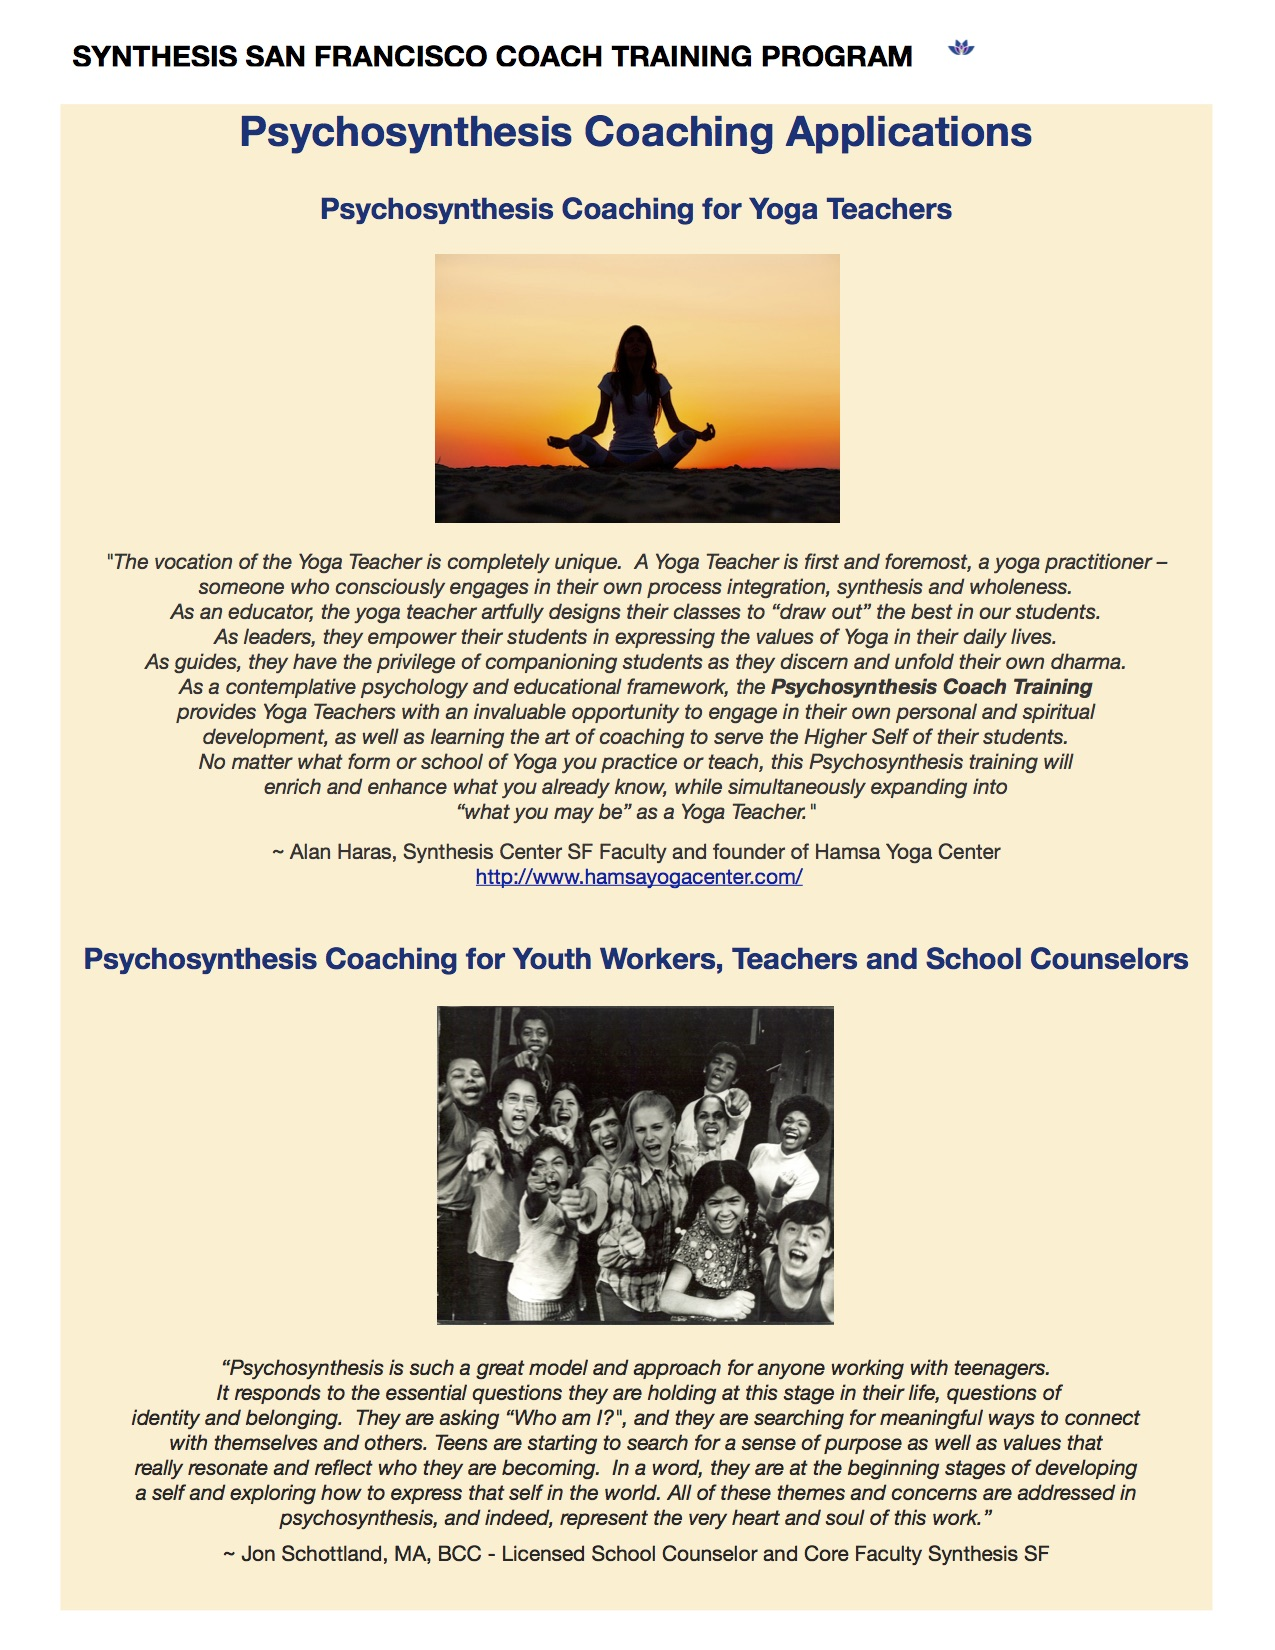 psychosynthesis training program san francisco View marjorie gross center's psychosynthesis teacher training program training with in-person options in ny and san francisco.